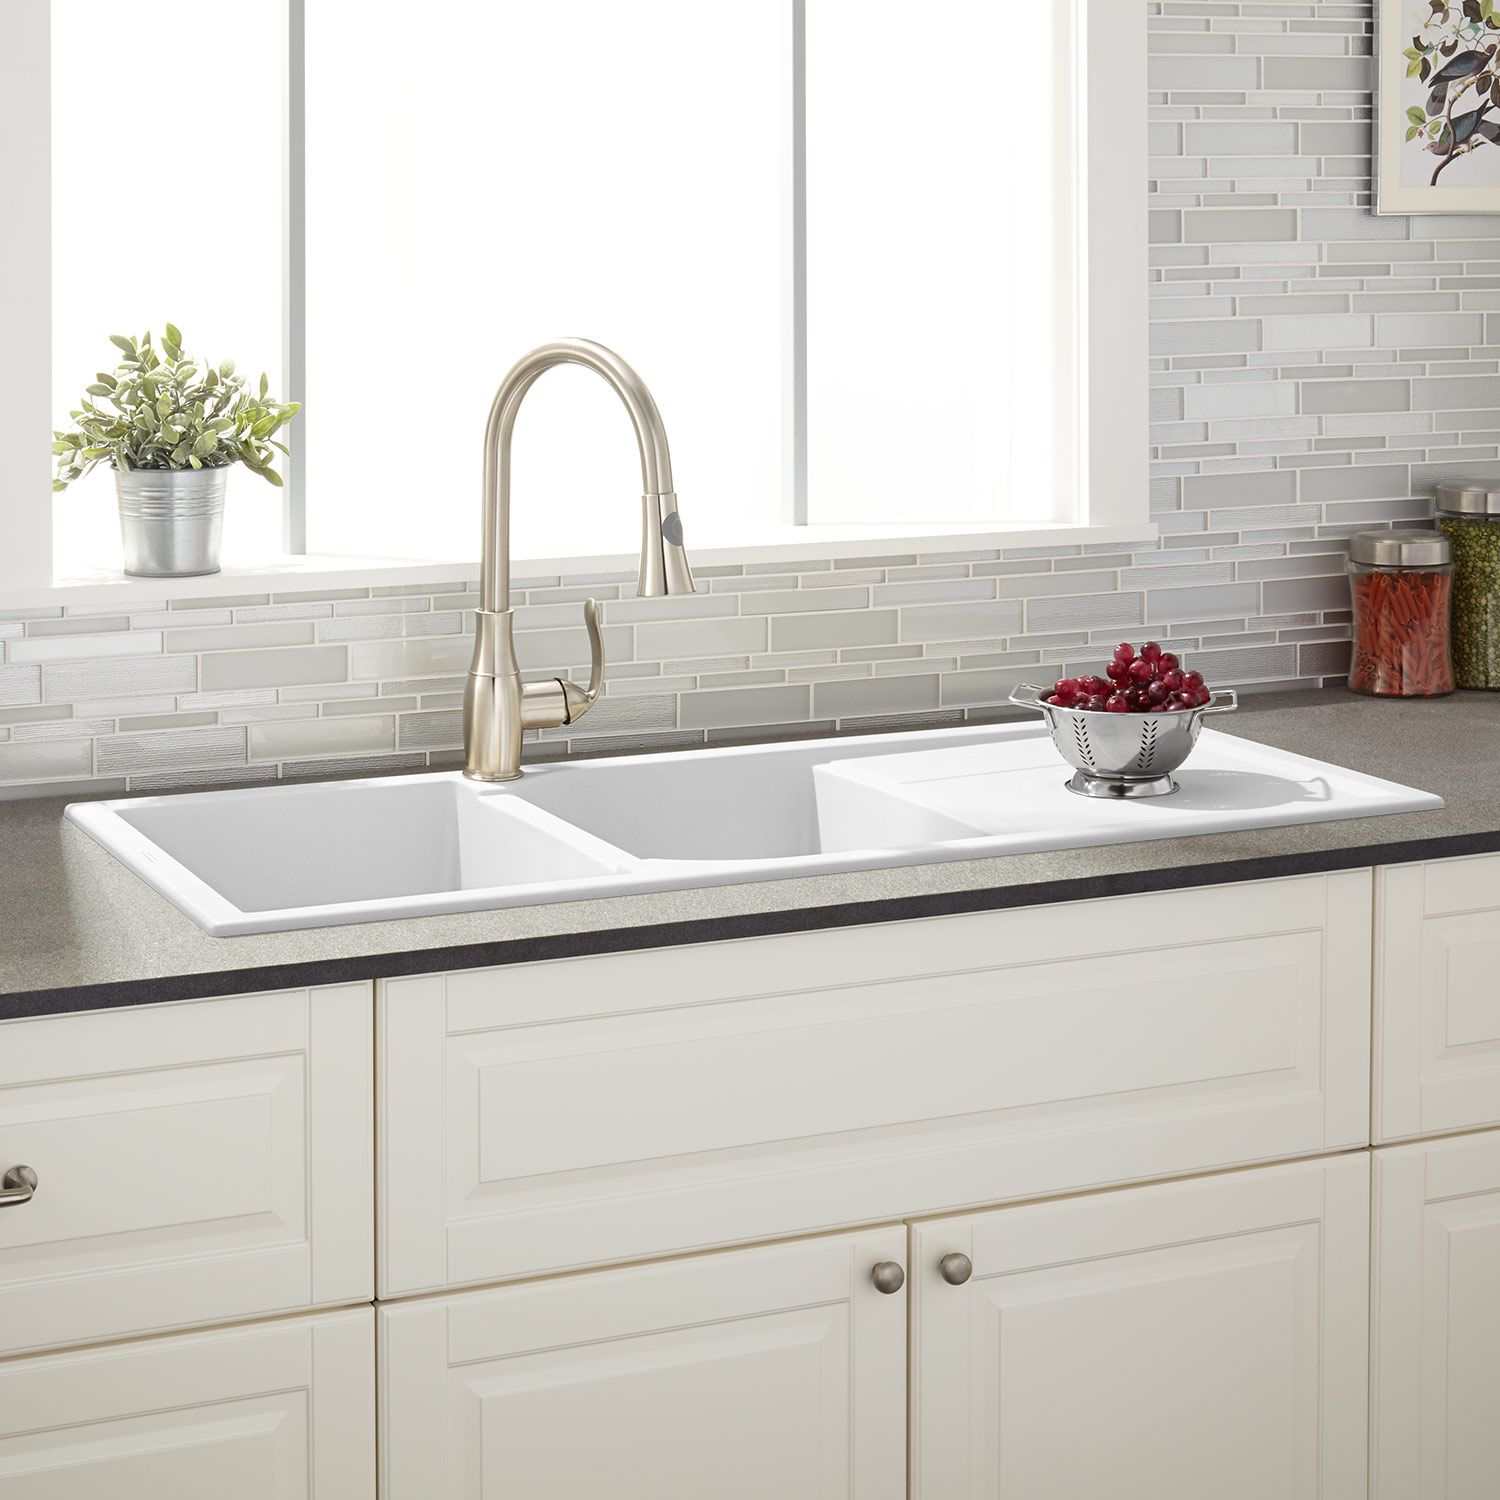 46 Owensboro Double Bowl Drop In Granite Composite Sink With Drain Board Cream Kitchen Best Kitchen Sinks Composite Kitchen Sinks Porcelain Kitchen Sink